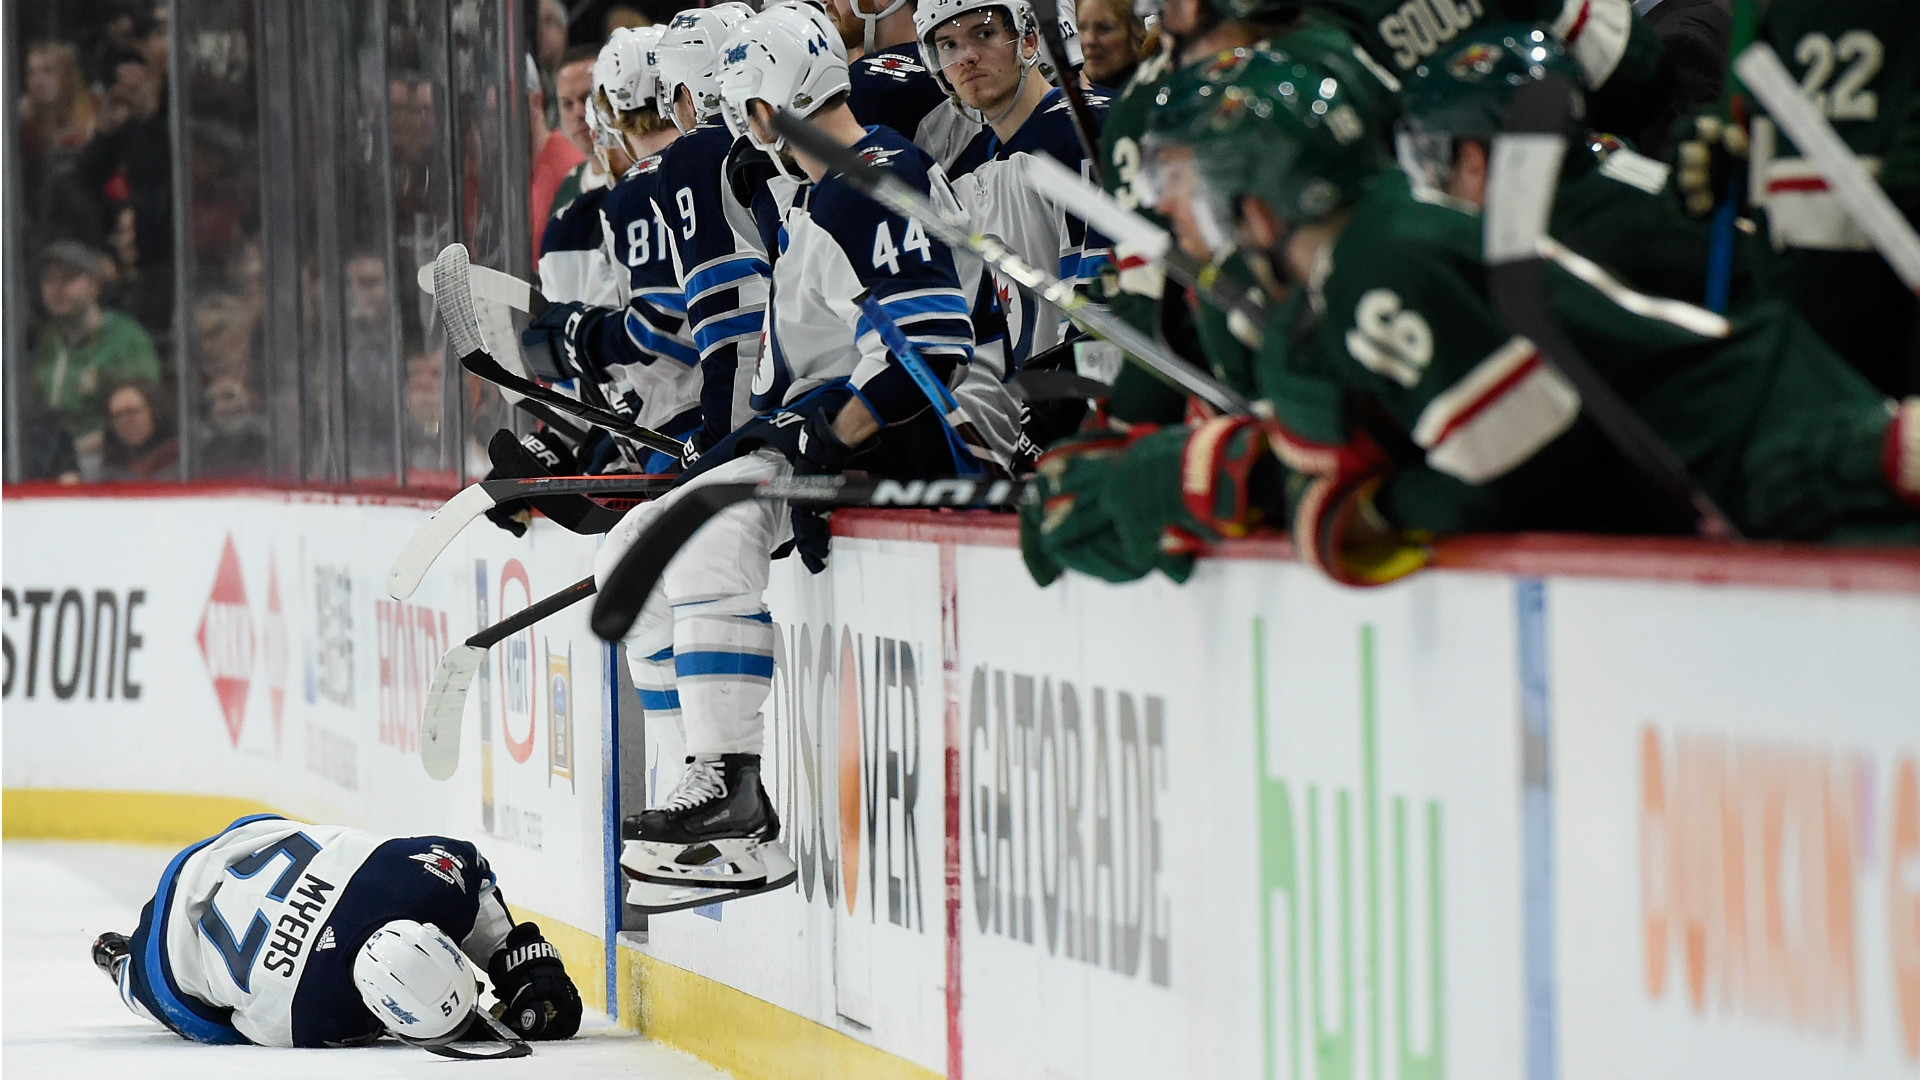 Jets top Wild 3-2 in playoff opener